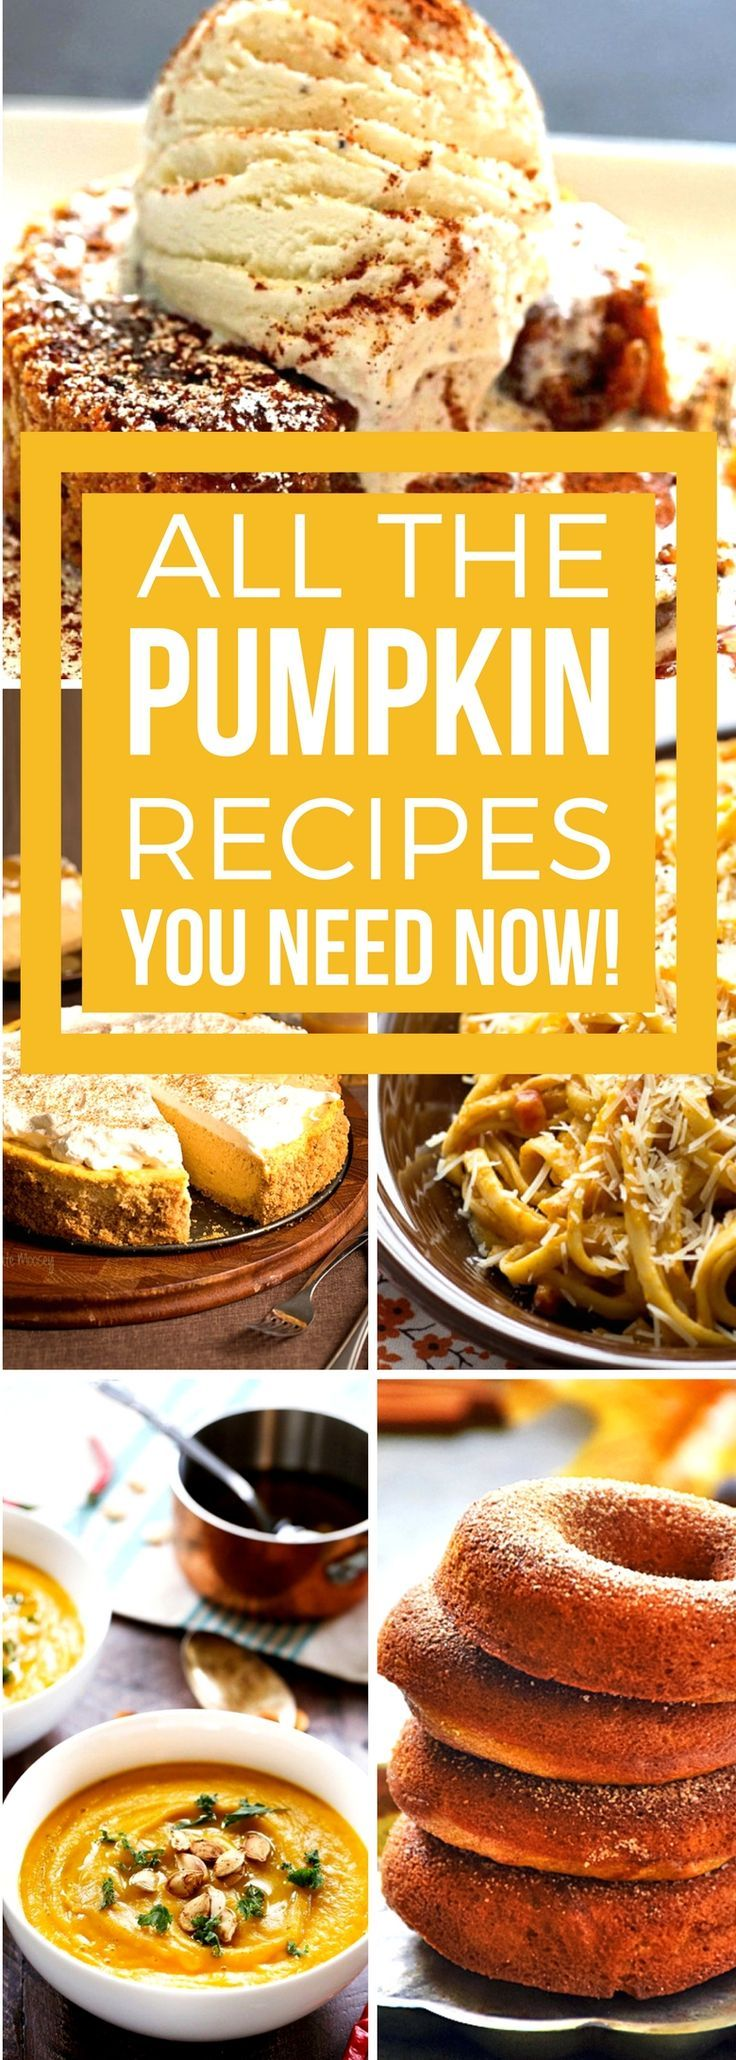 All the pumpkin recipes you need!! Sweet and savory & perfect for fall! Delicious and easy to prepare, these Sunday Supper recipes are perfect for holidays and special occasions, or whenever you want to enjoy the uniquely spicy-sweet flavor of pumpkin! #SundaySupper #pumpkinrecipes